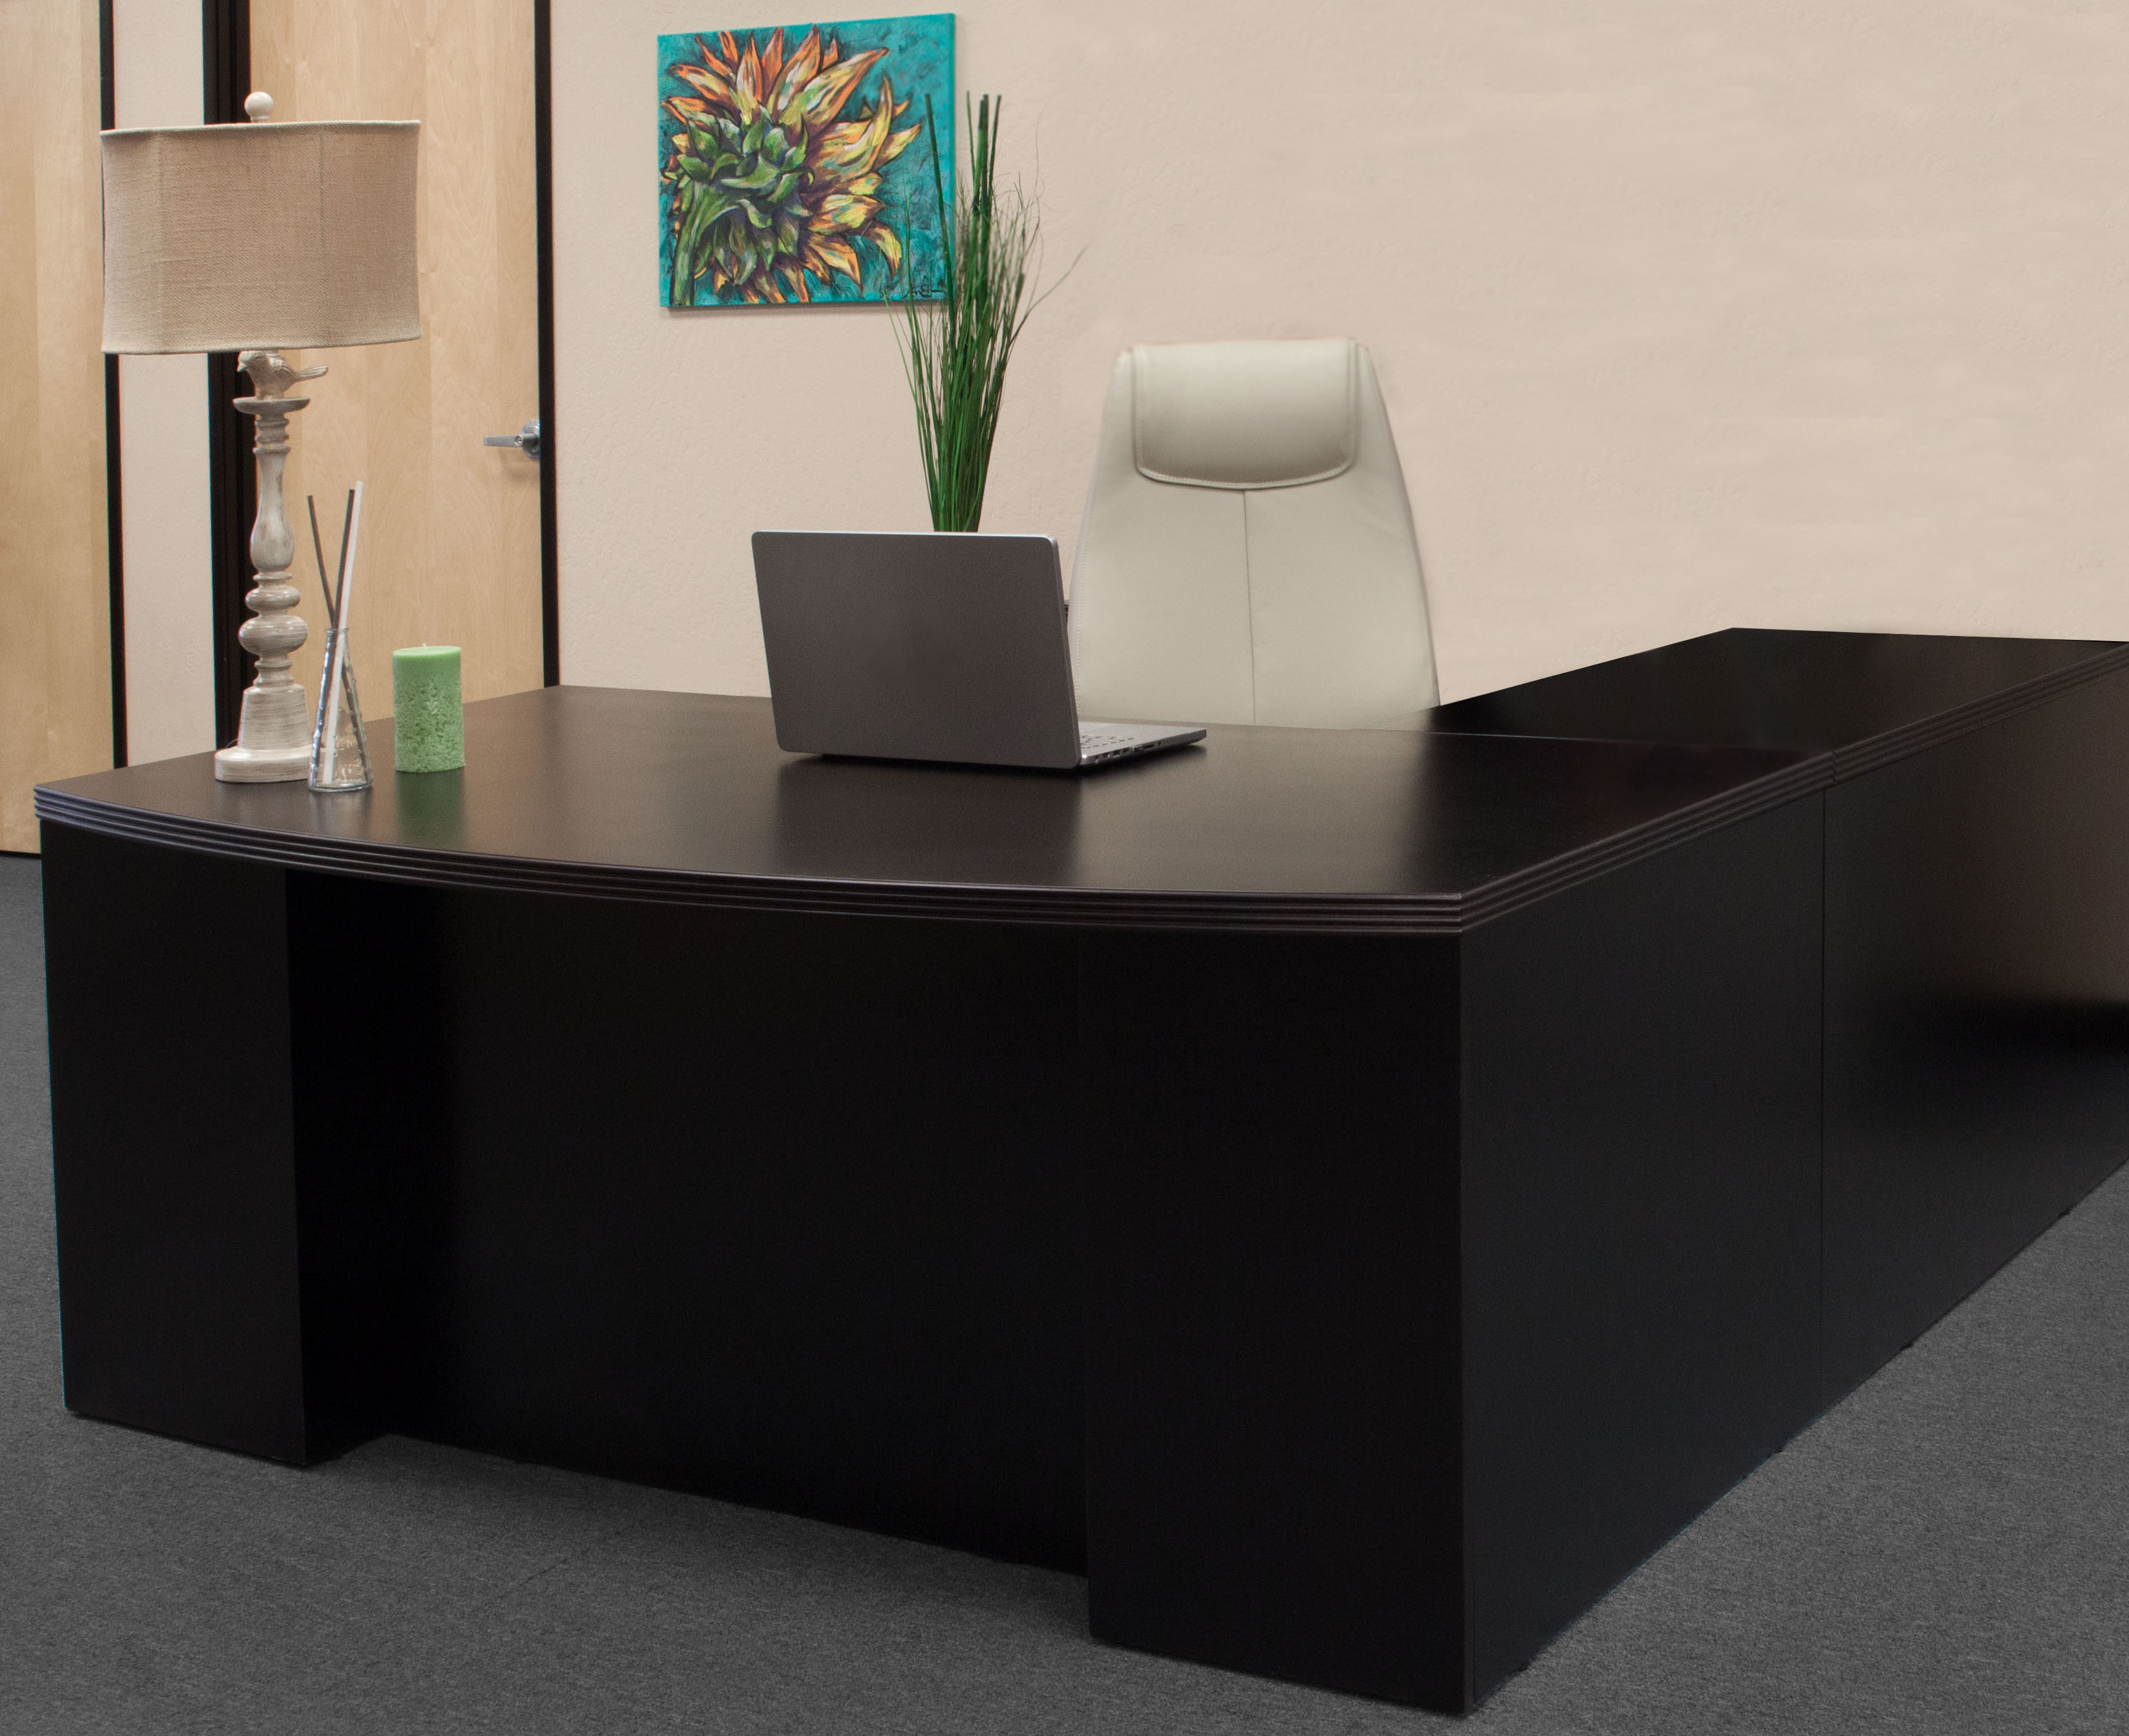 Hollywood New Left Return Espresso Inlay Executive L Shape Desk - National Office Interiors and ...